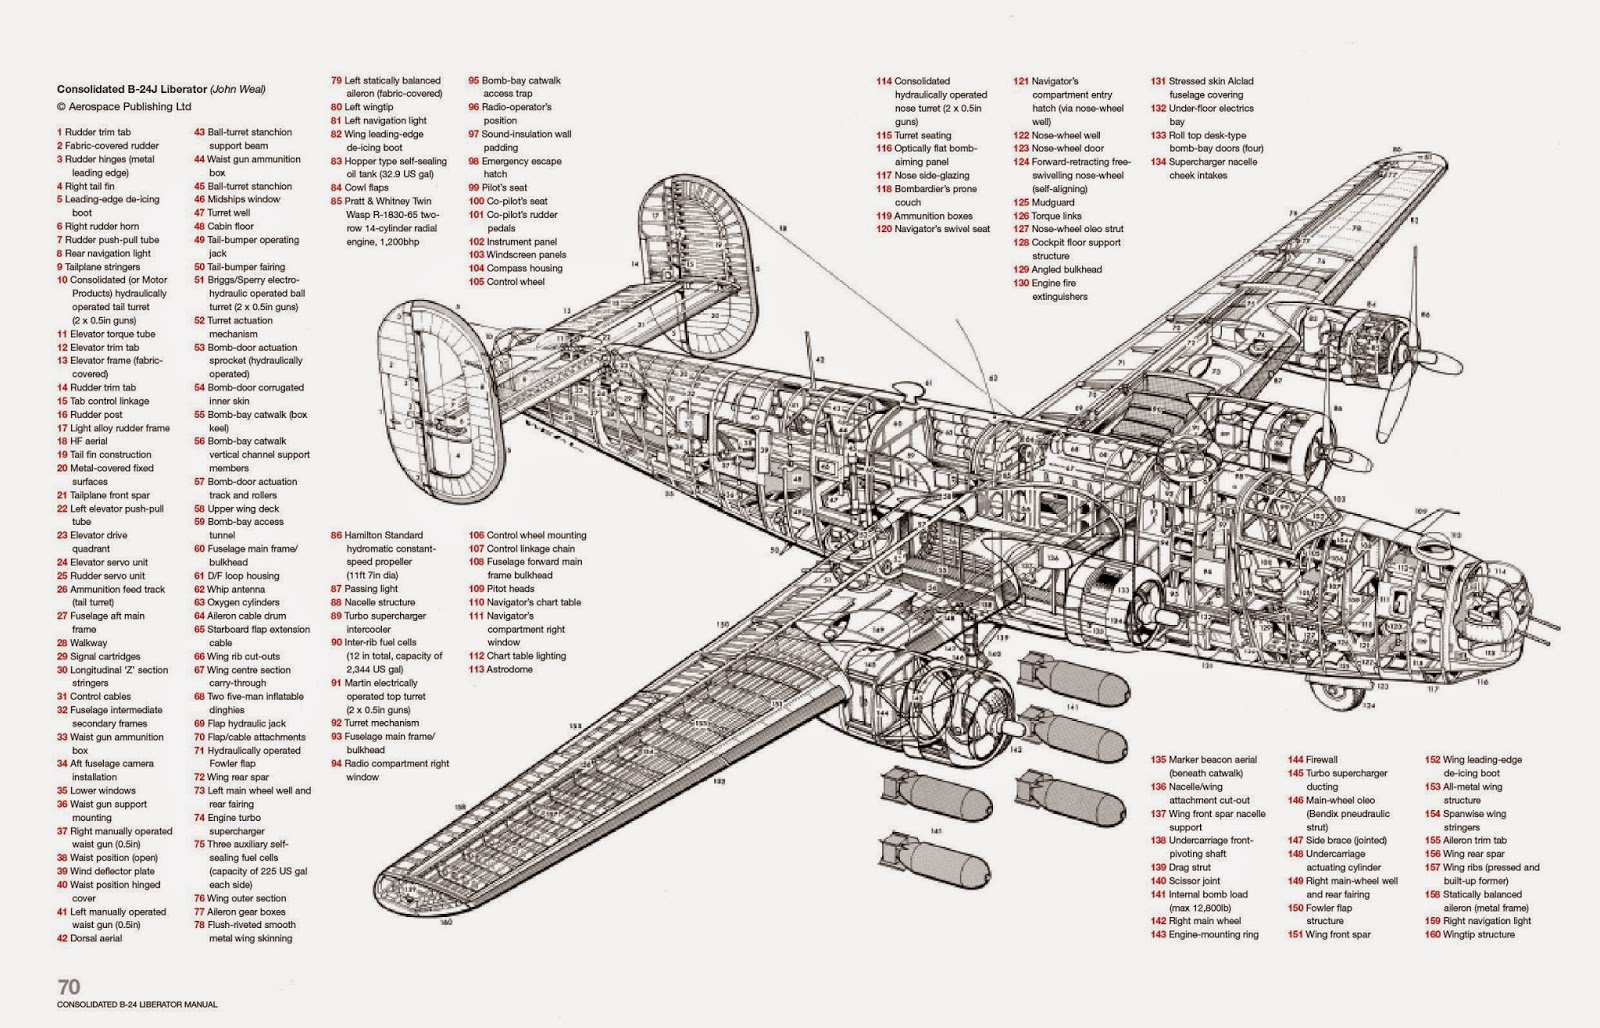 airplane schematic images